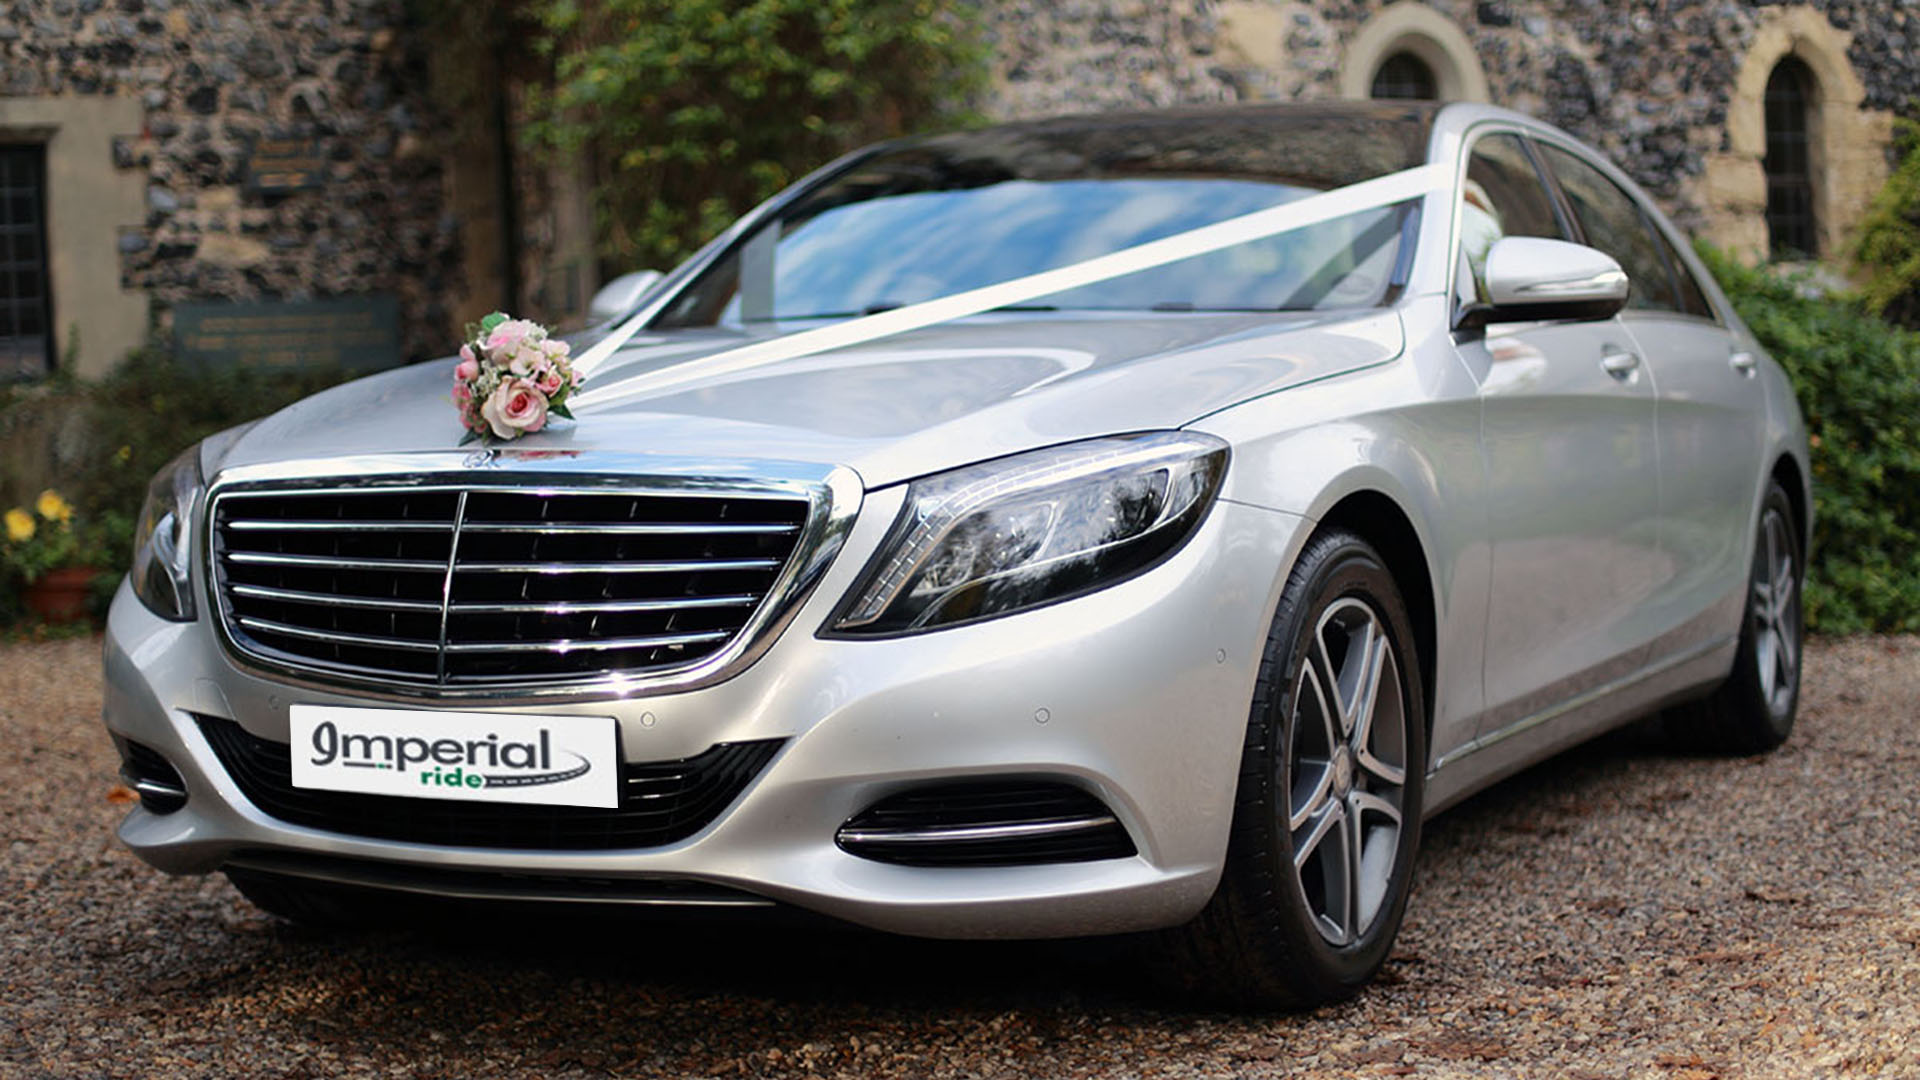 s-class-wedding-hire-in-islington